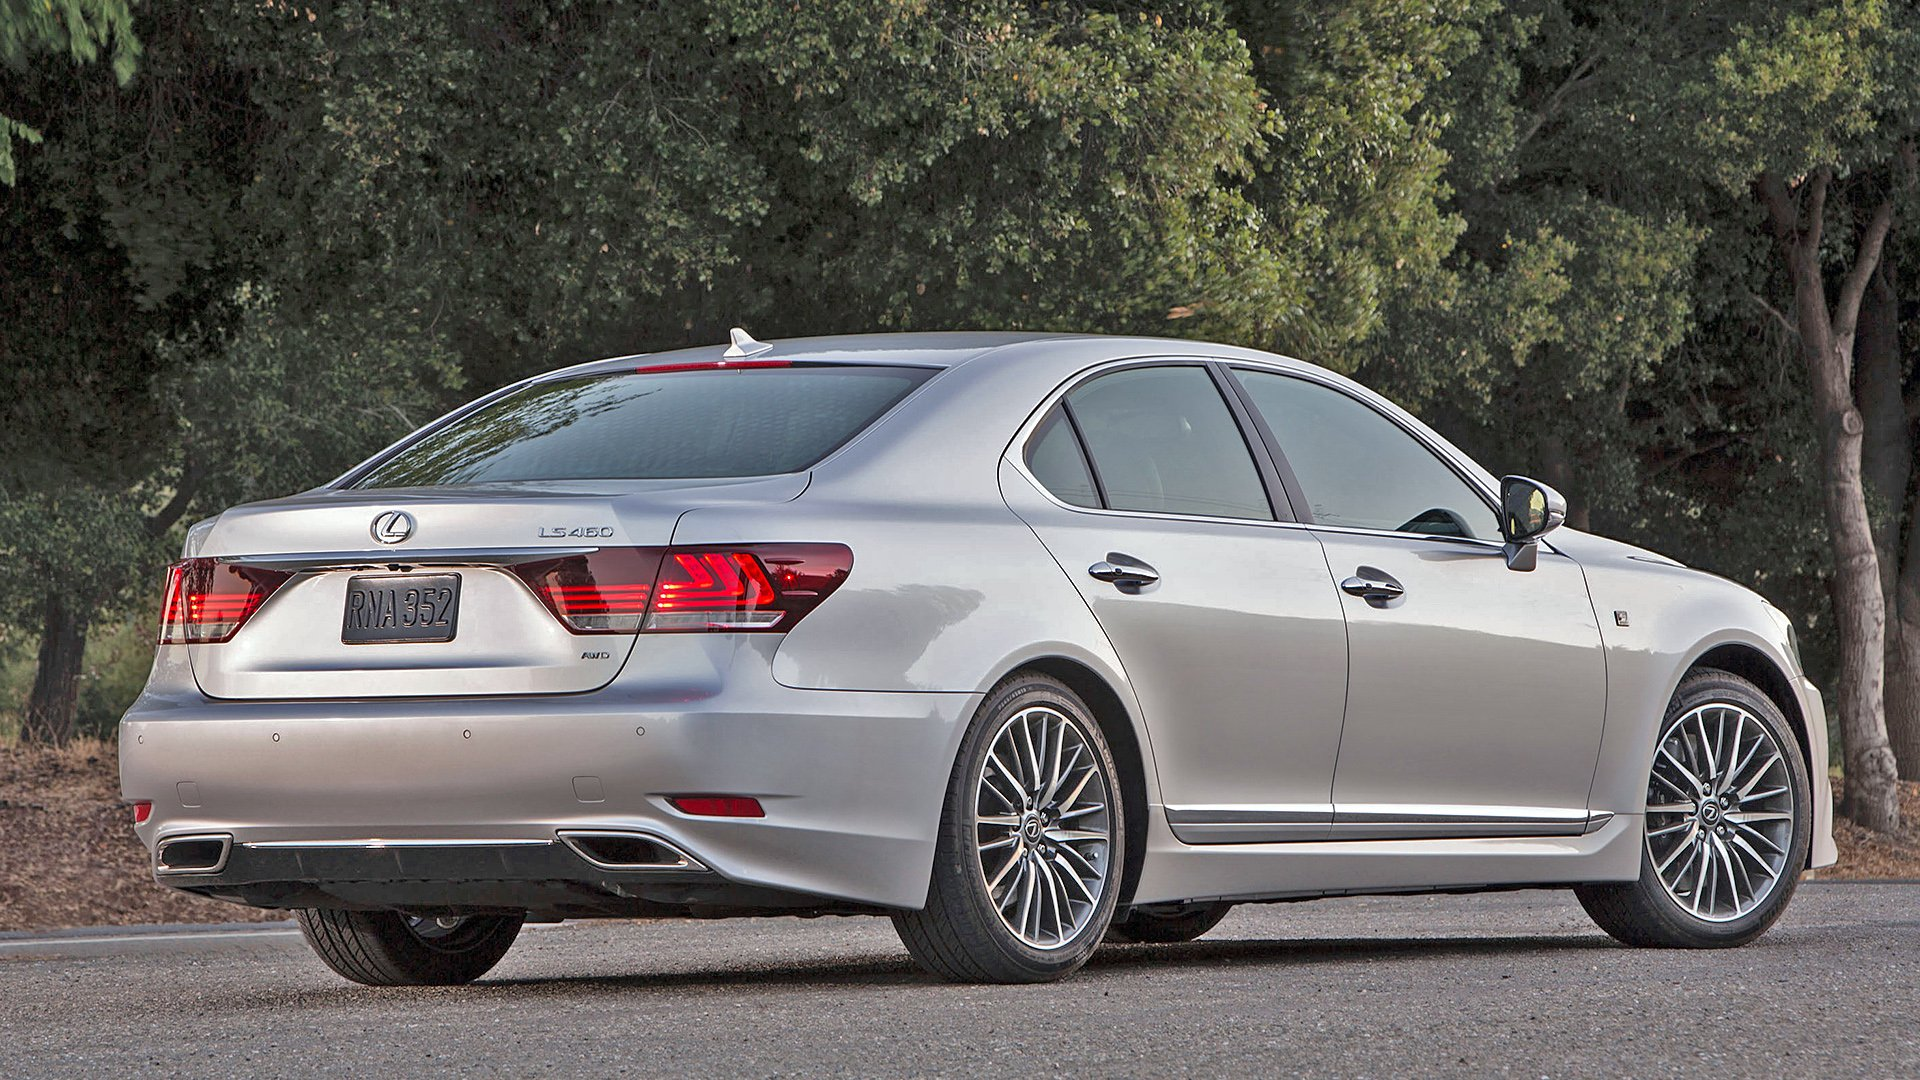 New 2019 Lexus LS 460 Exterior Changes